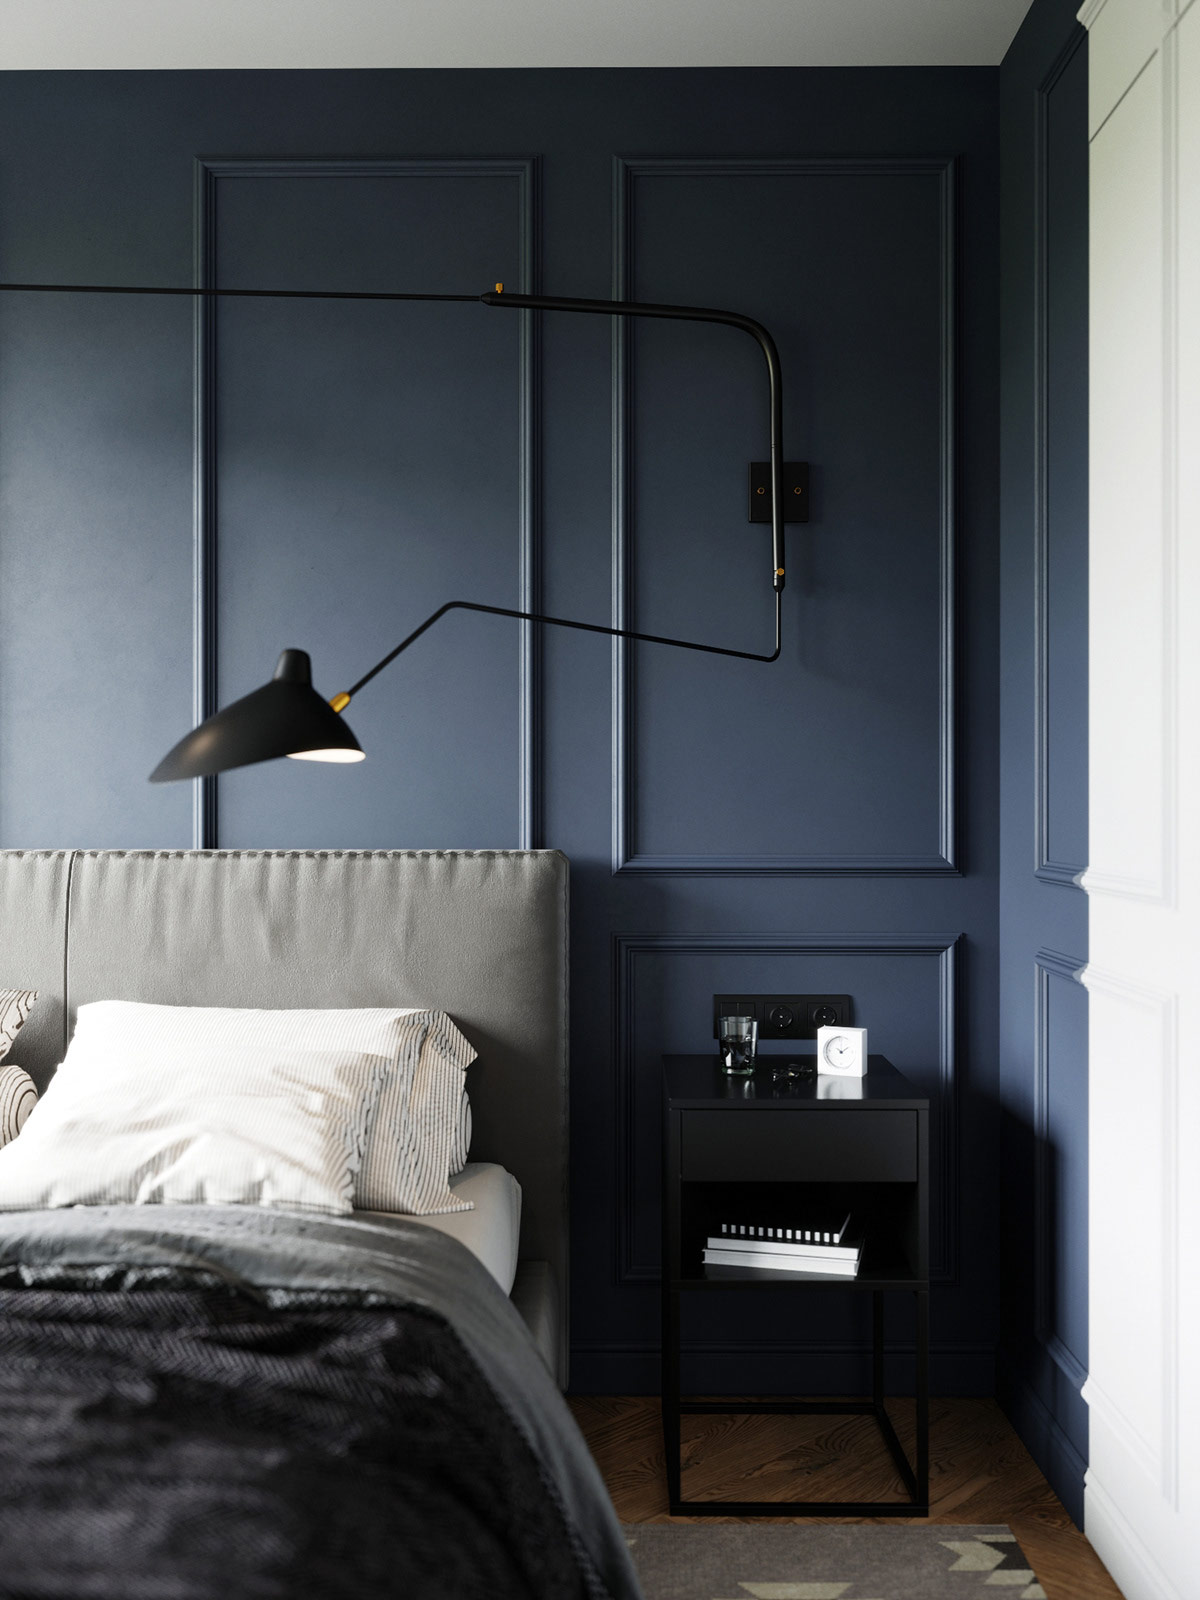 swing-arm-wall-lamp-idea-for-modern-bedroom-design